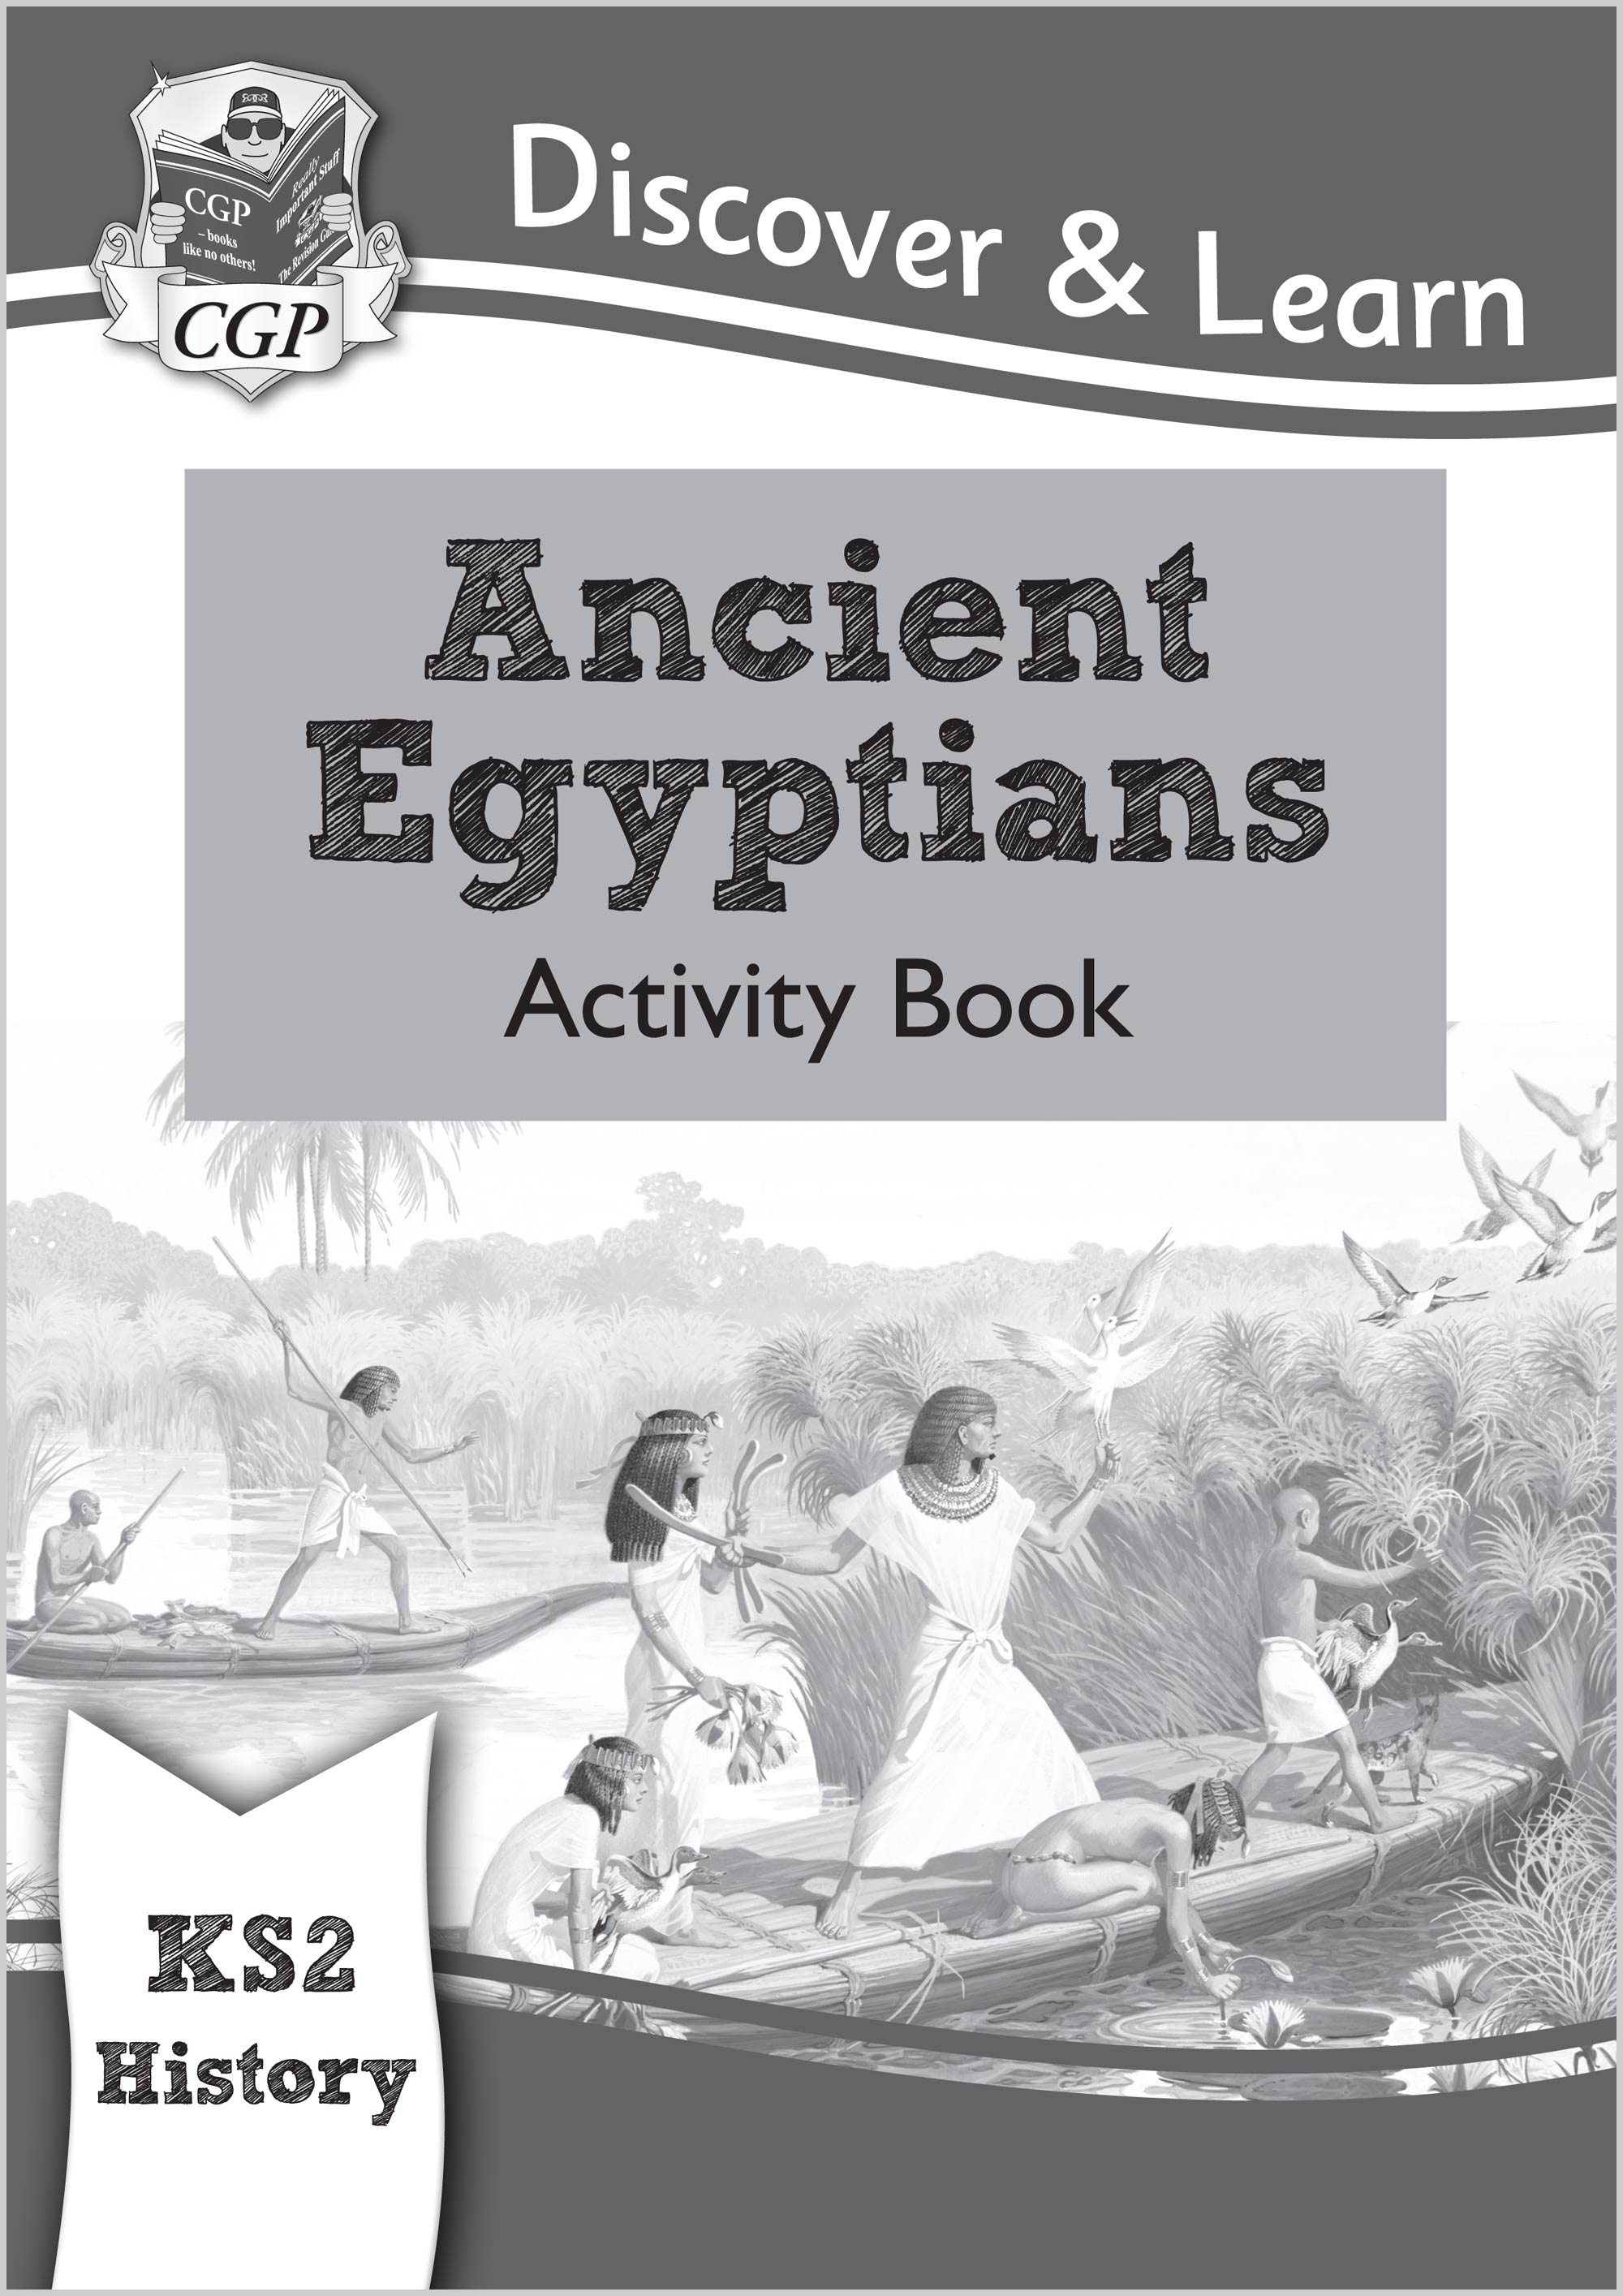 HEW21 - New KS2 Discover & Learn: History - Ancient Egyptians Activity Book